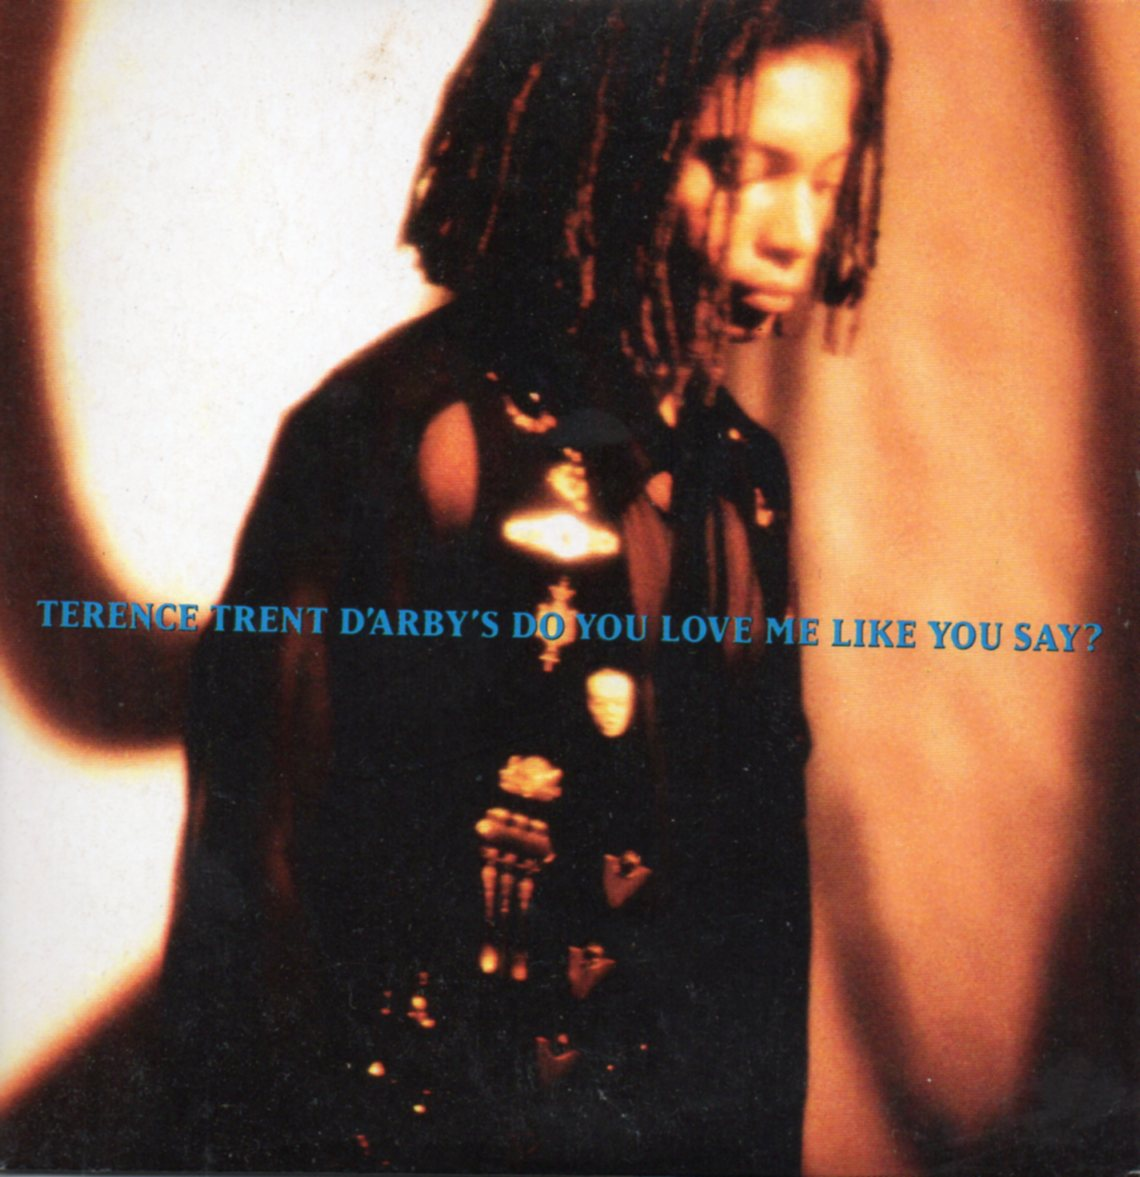 TERENCE TRENT D'ARBY - Do you love me like you say 2-TRACK CARD SLEEVE - CD single